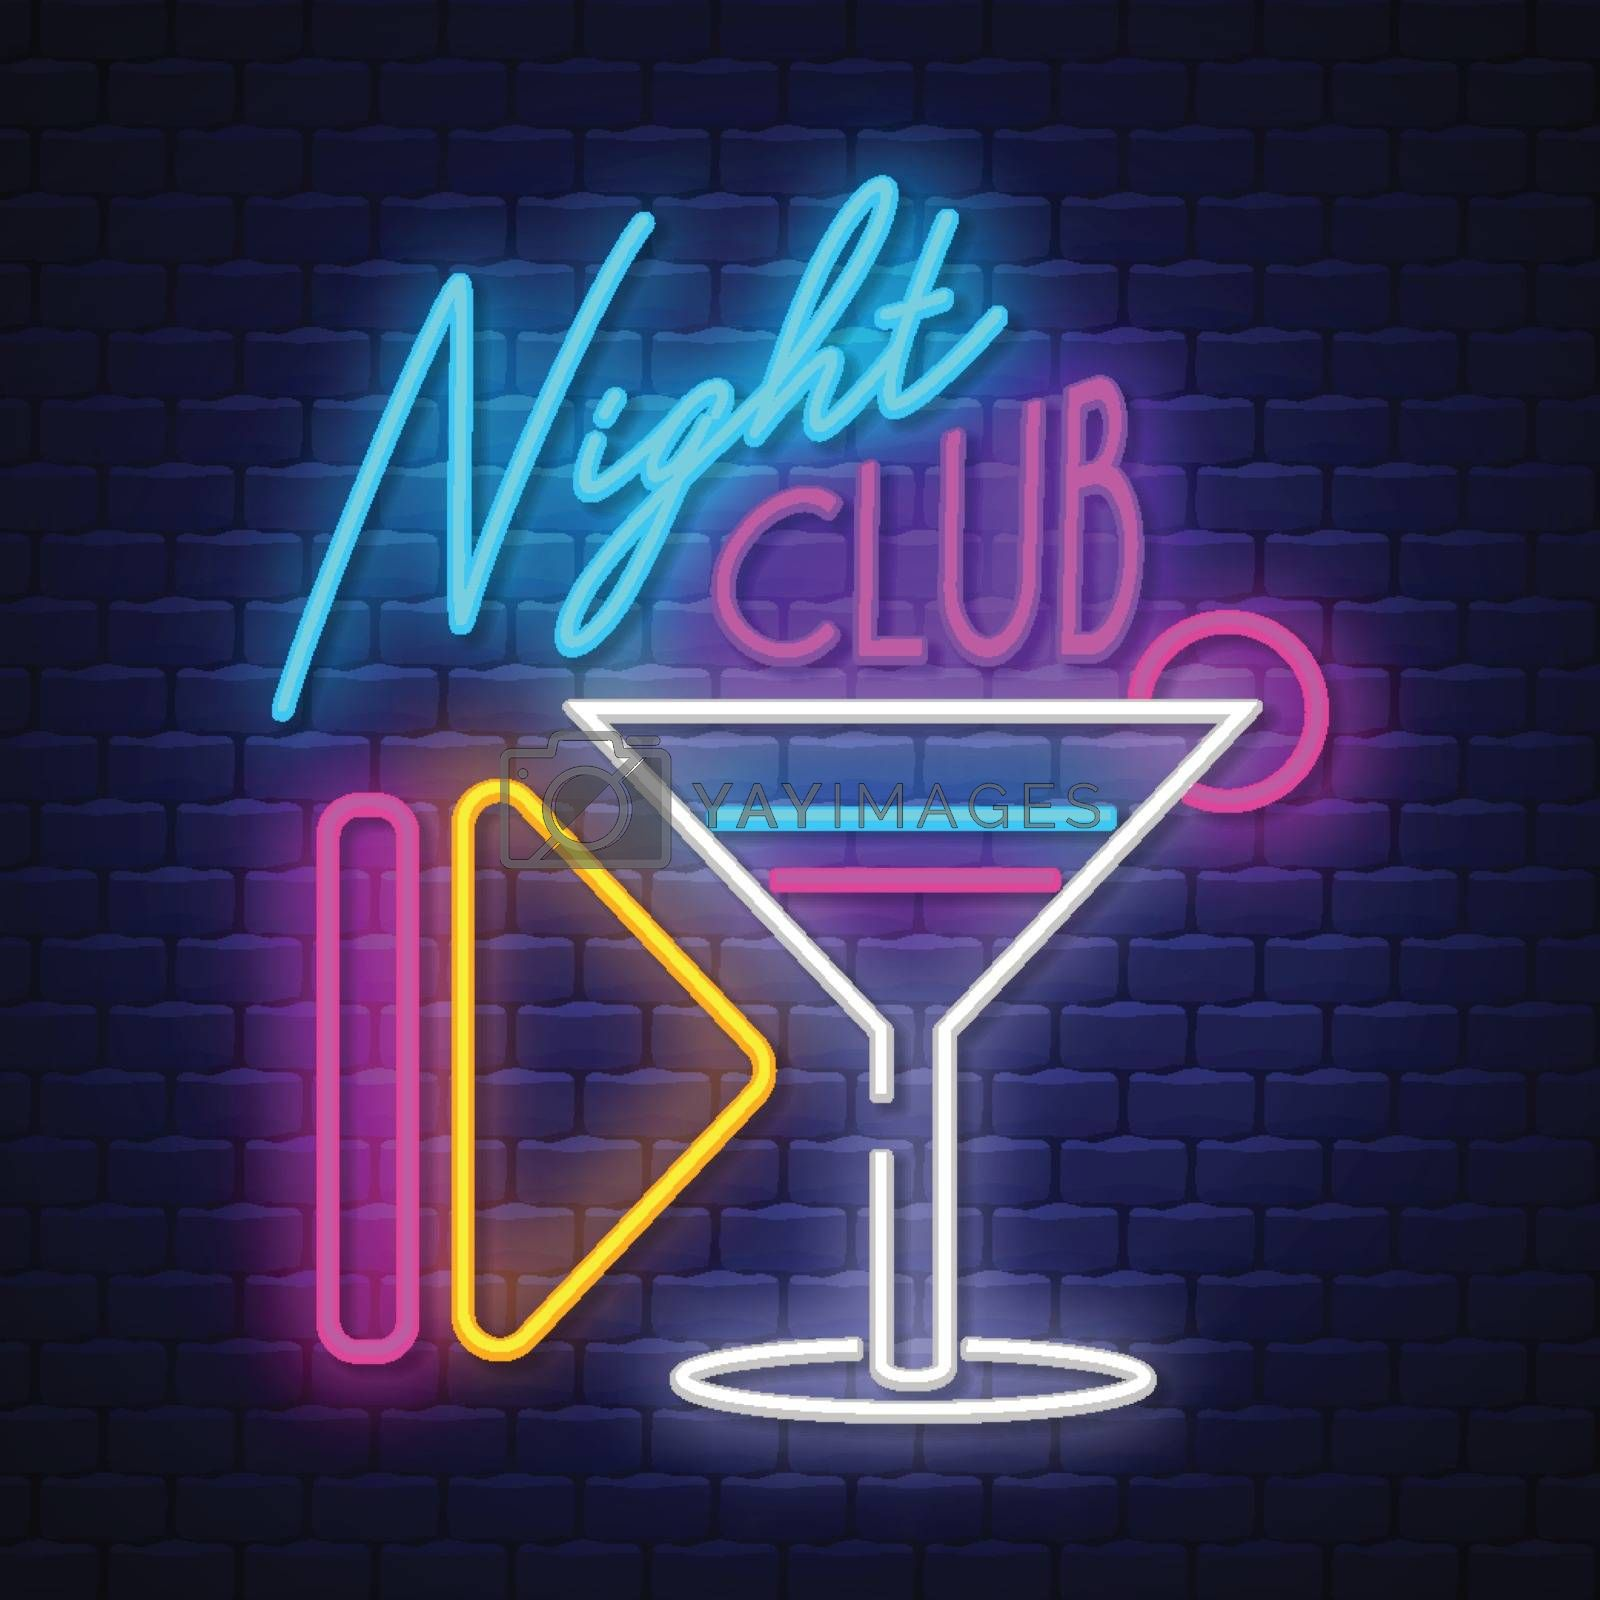 Night Club- Neon Sign Vector. Night Cllub - Badge in neon style on brick wall background, design element, light banner, announcement neon signboard, night advensing. Vector Illustration